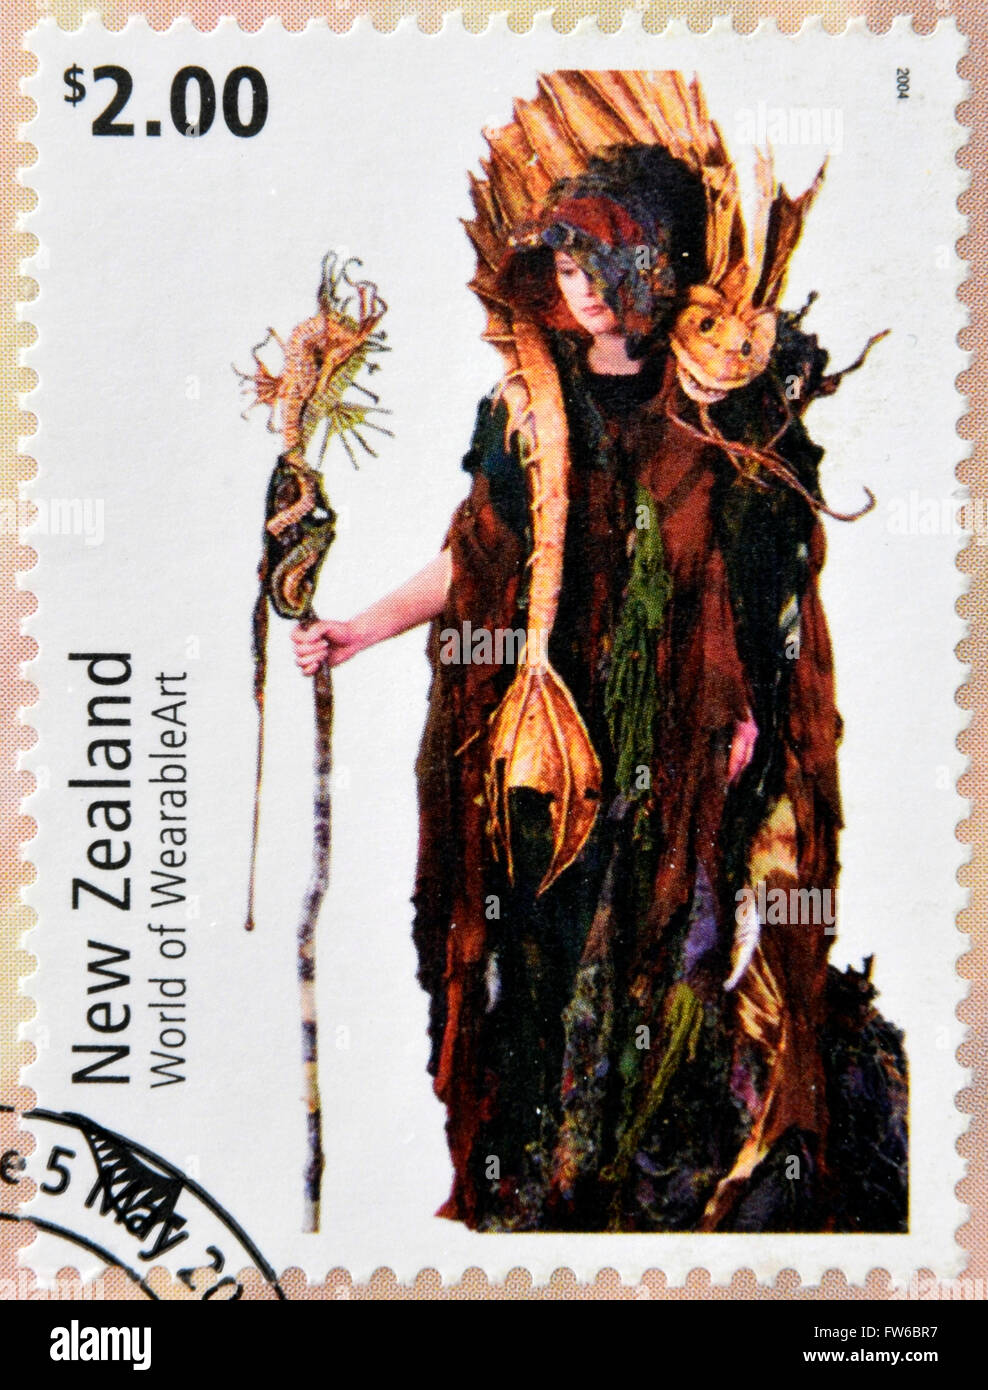 NEW ZEALAND - CIRCA 2004: Stamps printed in New Zealand dedicated to World of WearableArt shows Cailleach Na Mara Stock Photo